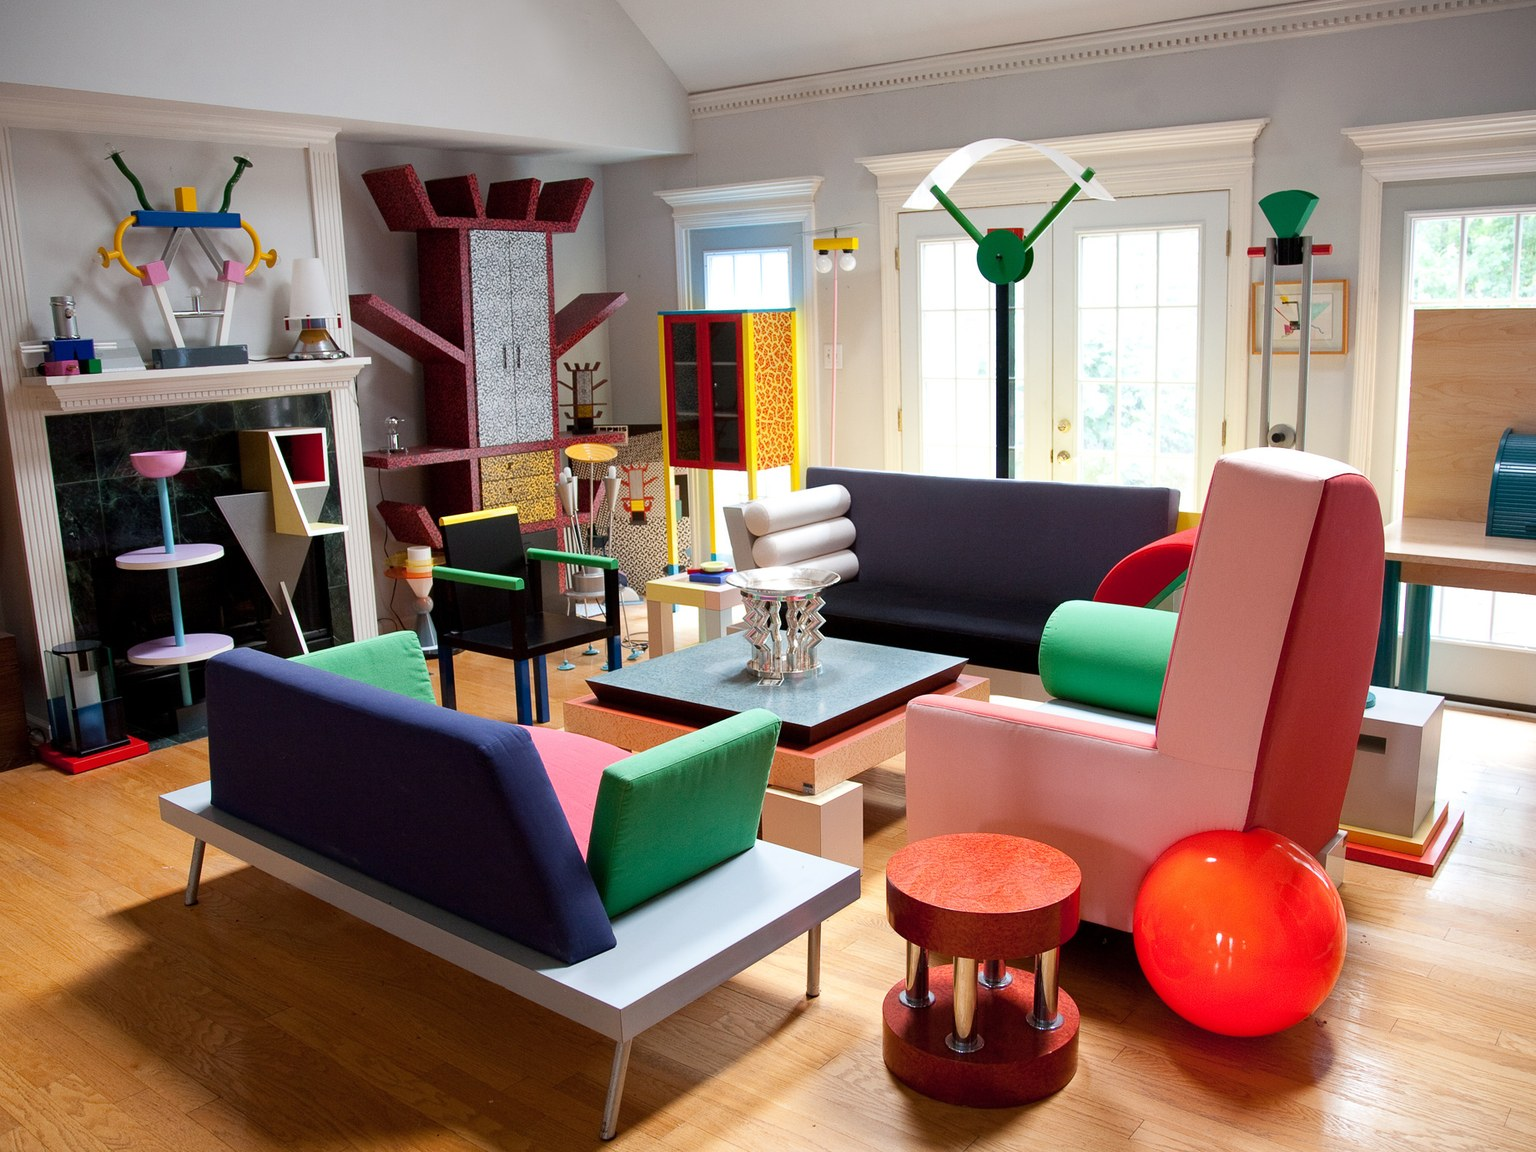 craftsmanship Behind the Scenes: Get Inspired by the Italian Craftsmanship The Most Exquisite Italian Craftsmanship Memphis Design Living Room Ettore Sottsass